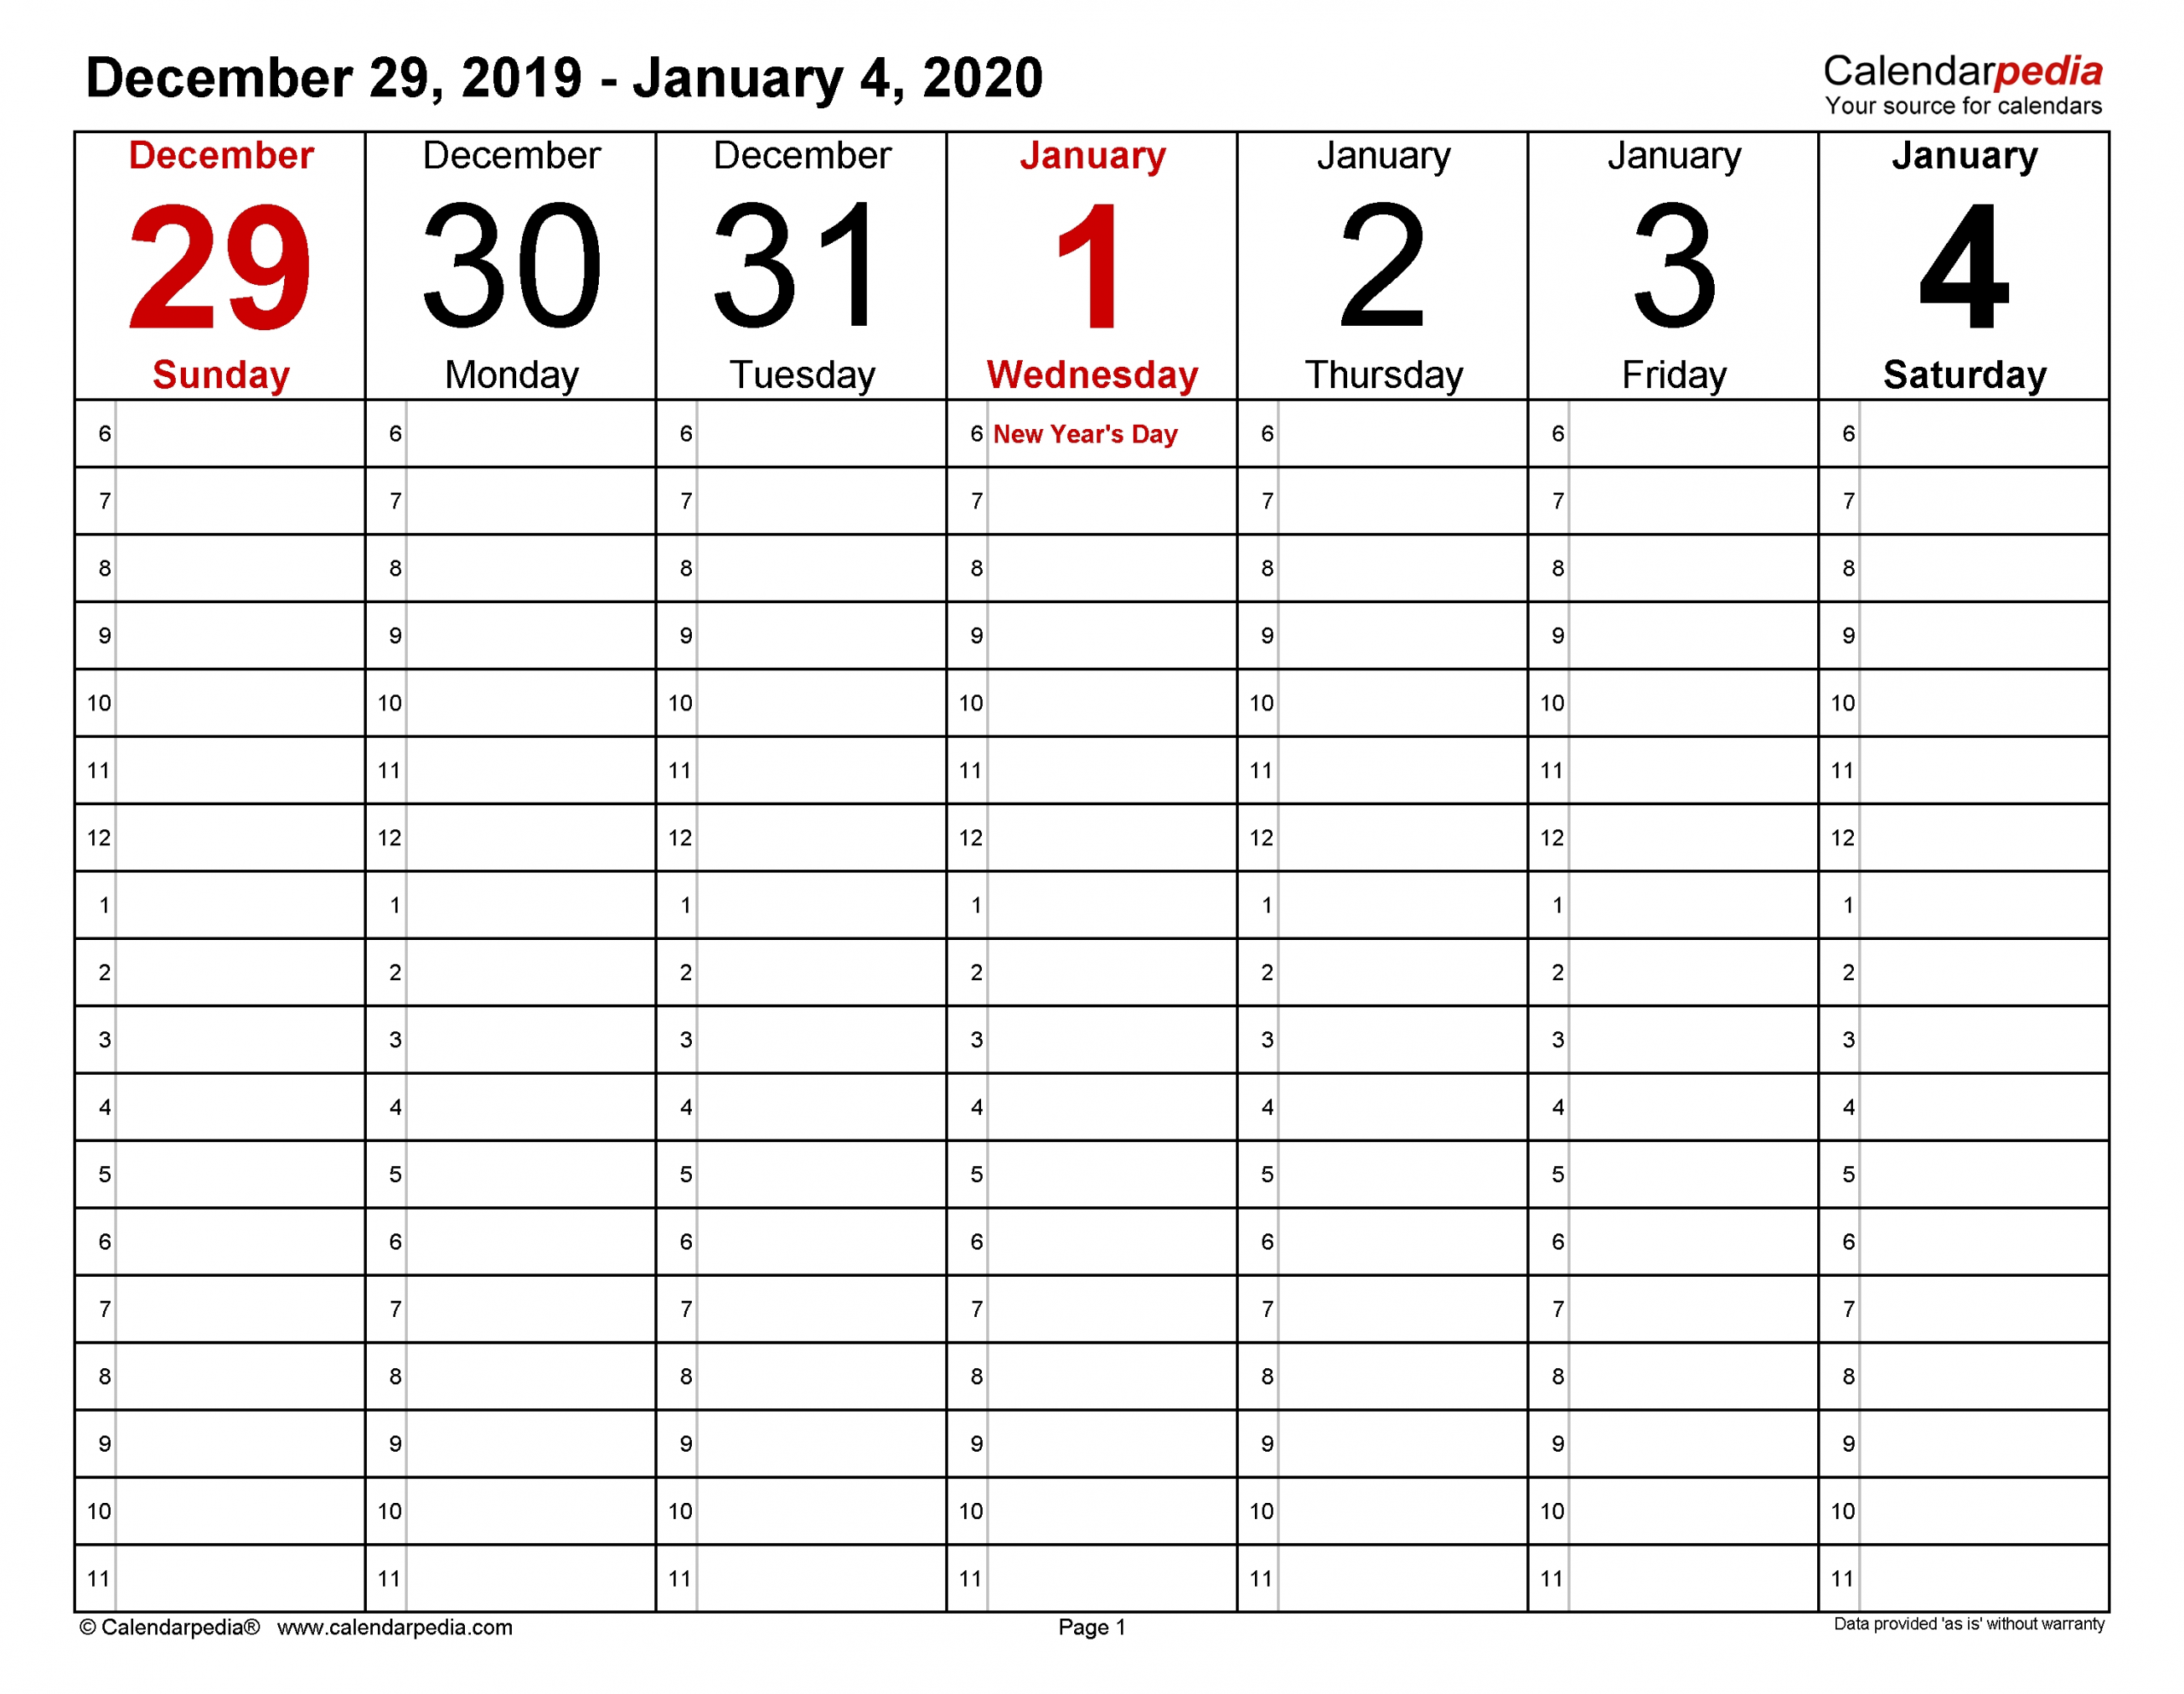 Weekly Calendars 2020 For Word - 12 Free Printable Templates intended for 30 Day Blank Calendar For Bills Due